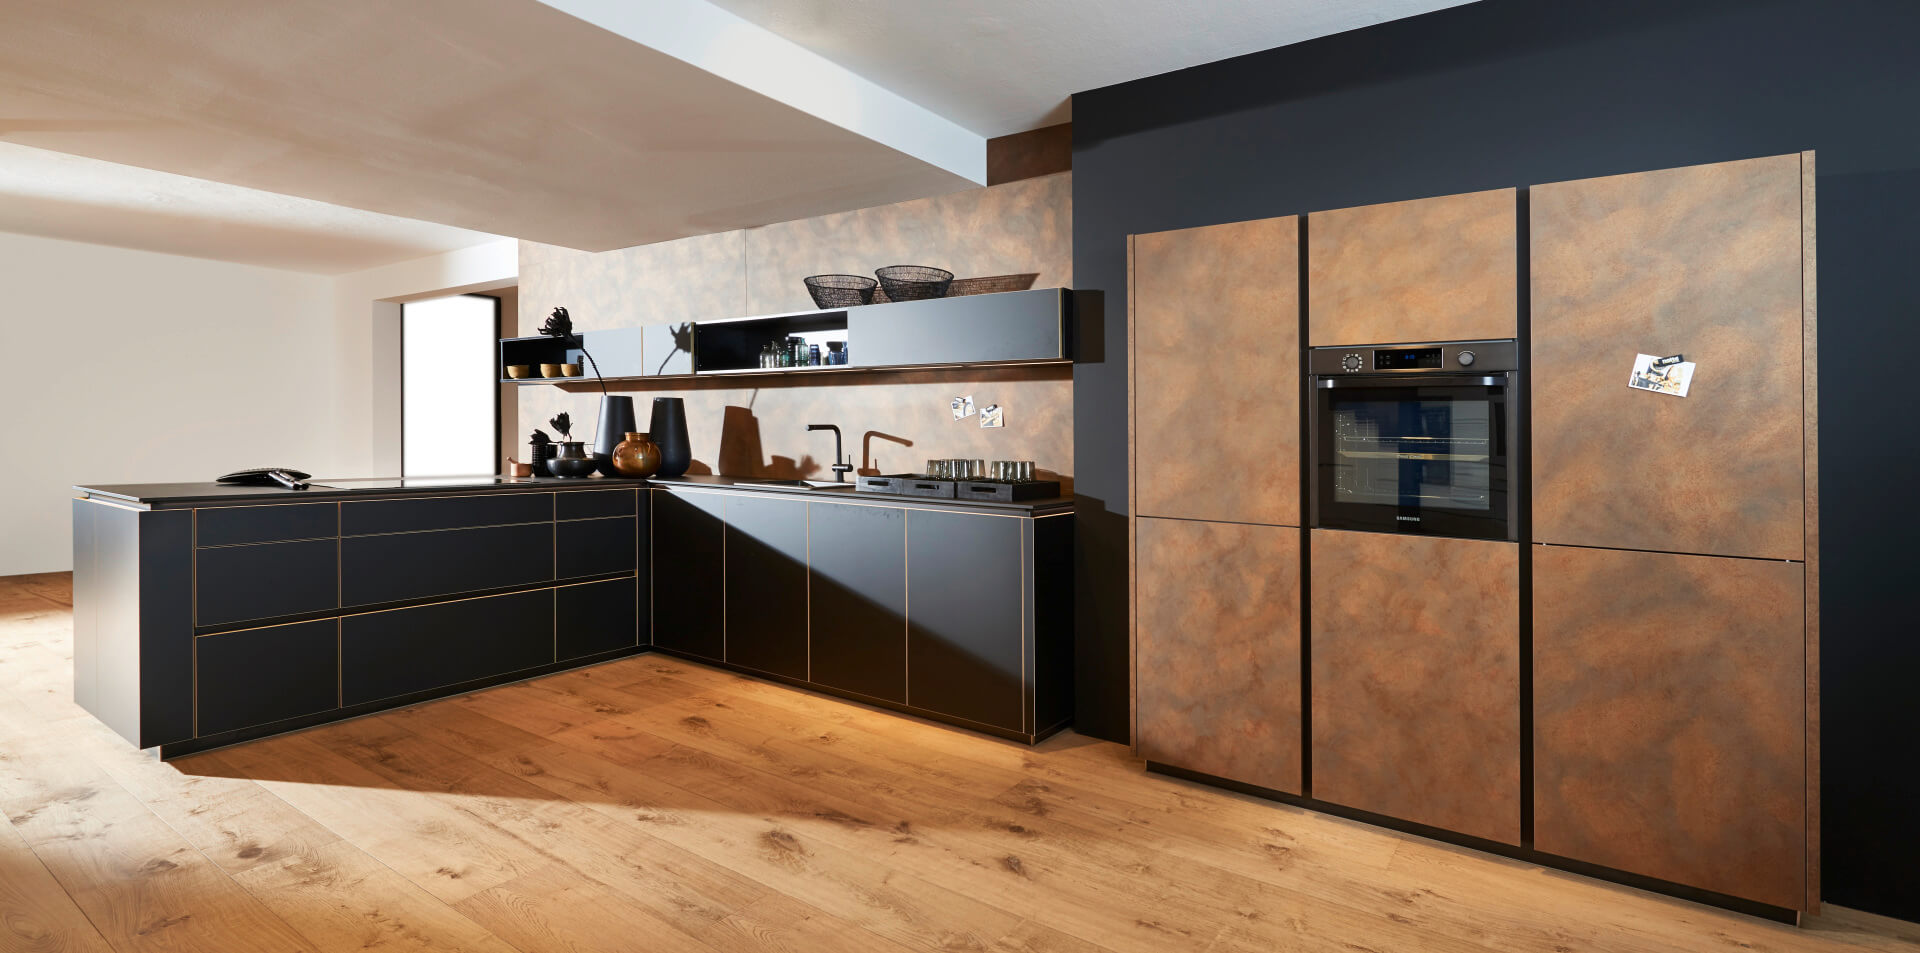 Nolte-Kitchens-Flair-Gallery3